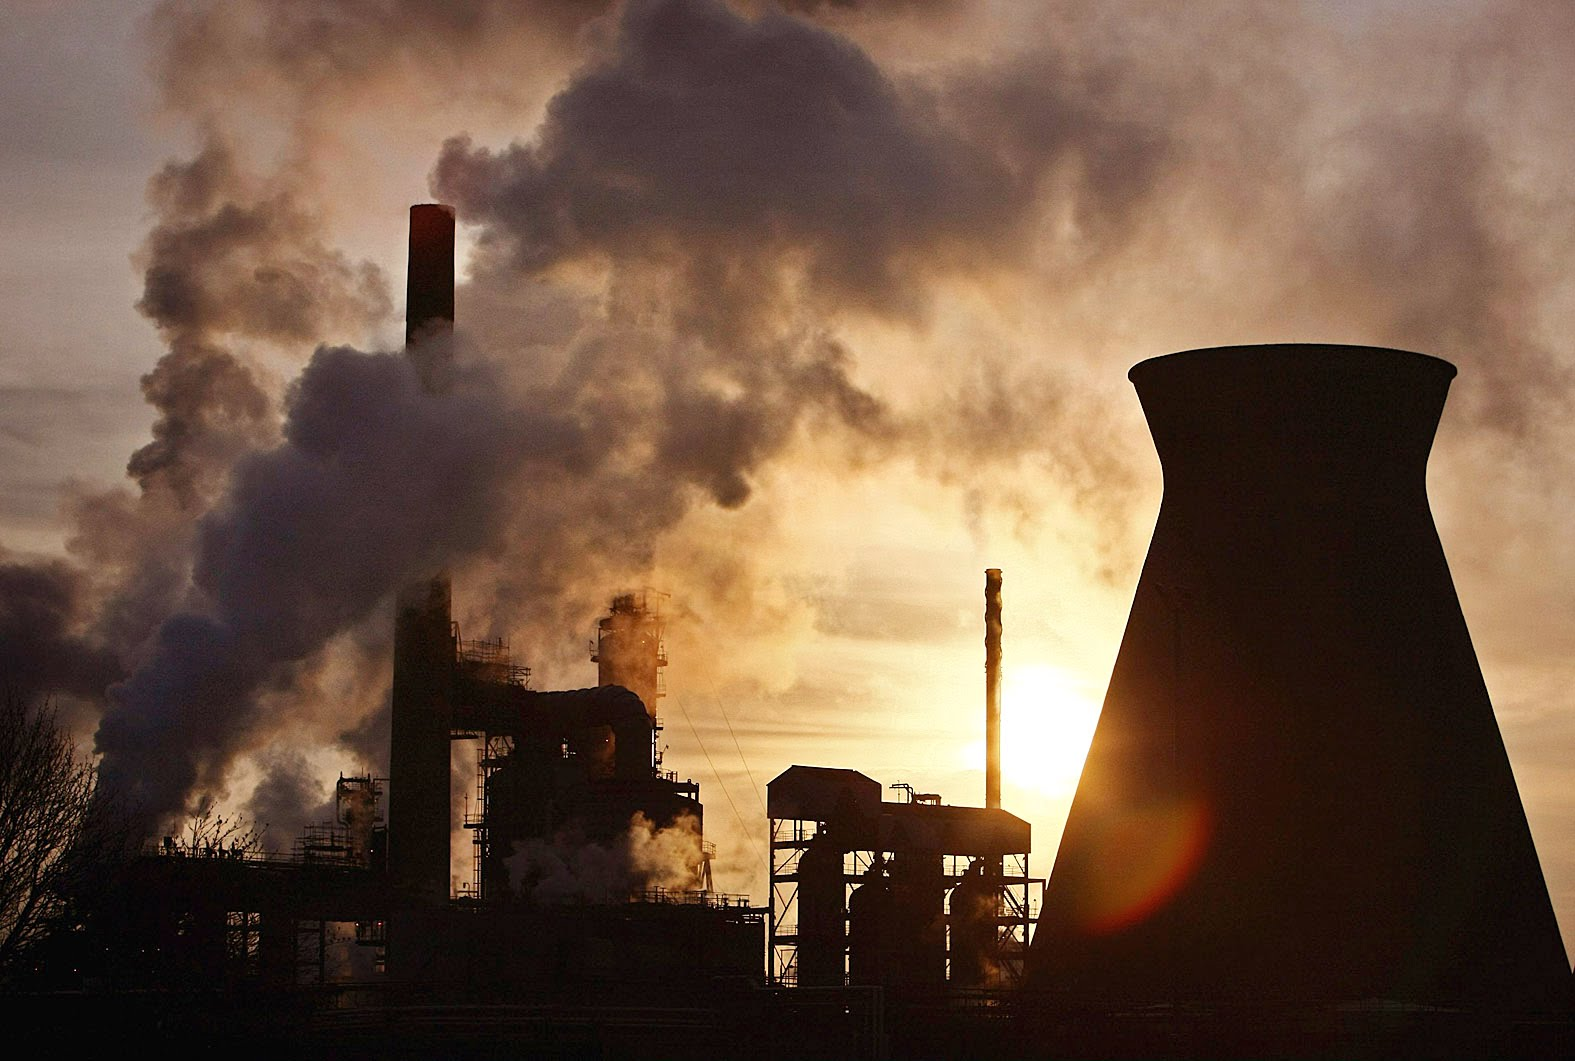 co2 emission as a severe global environmental Global warming may not be damaging the earth as quickly as feared after scientists found that plants can soak up more carbon dioxide than previously thought according to researchers, climate.